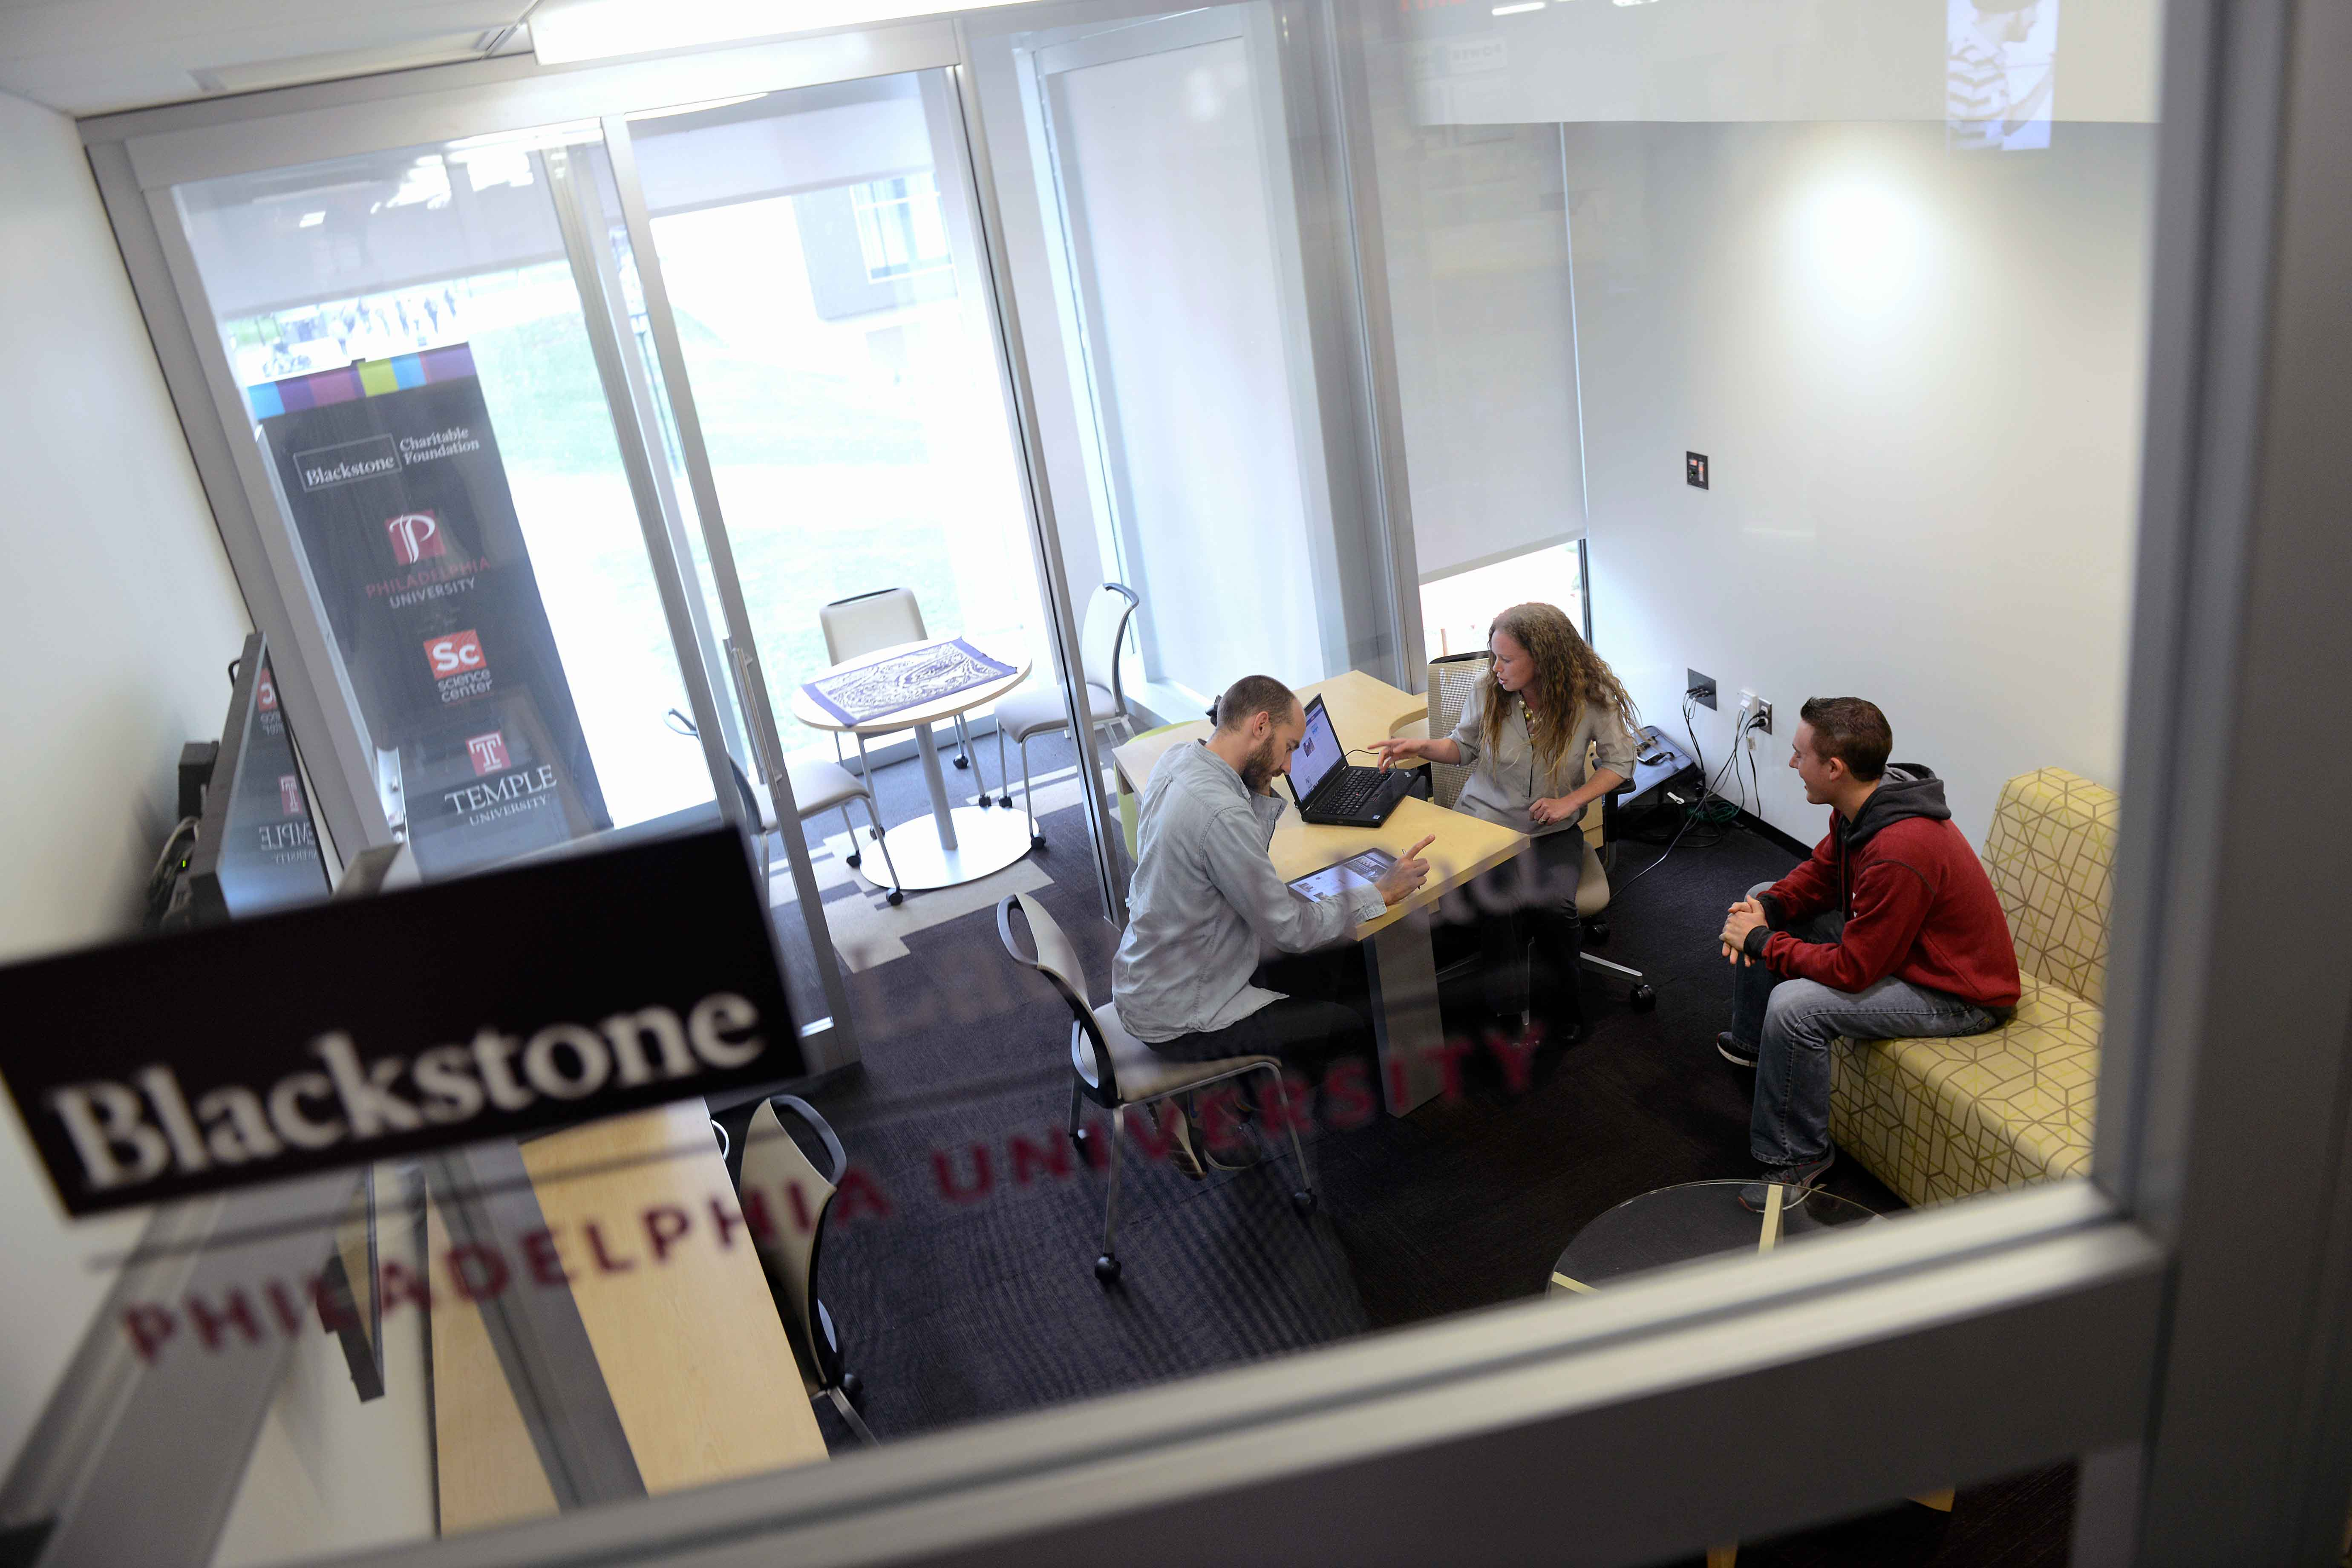 the philau entrepreneurs fostering a startup culture on campus the blackstone launchpad at philau provides entrepreneurial resources to students alumni and faculty